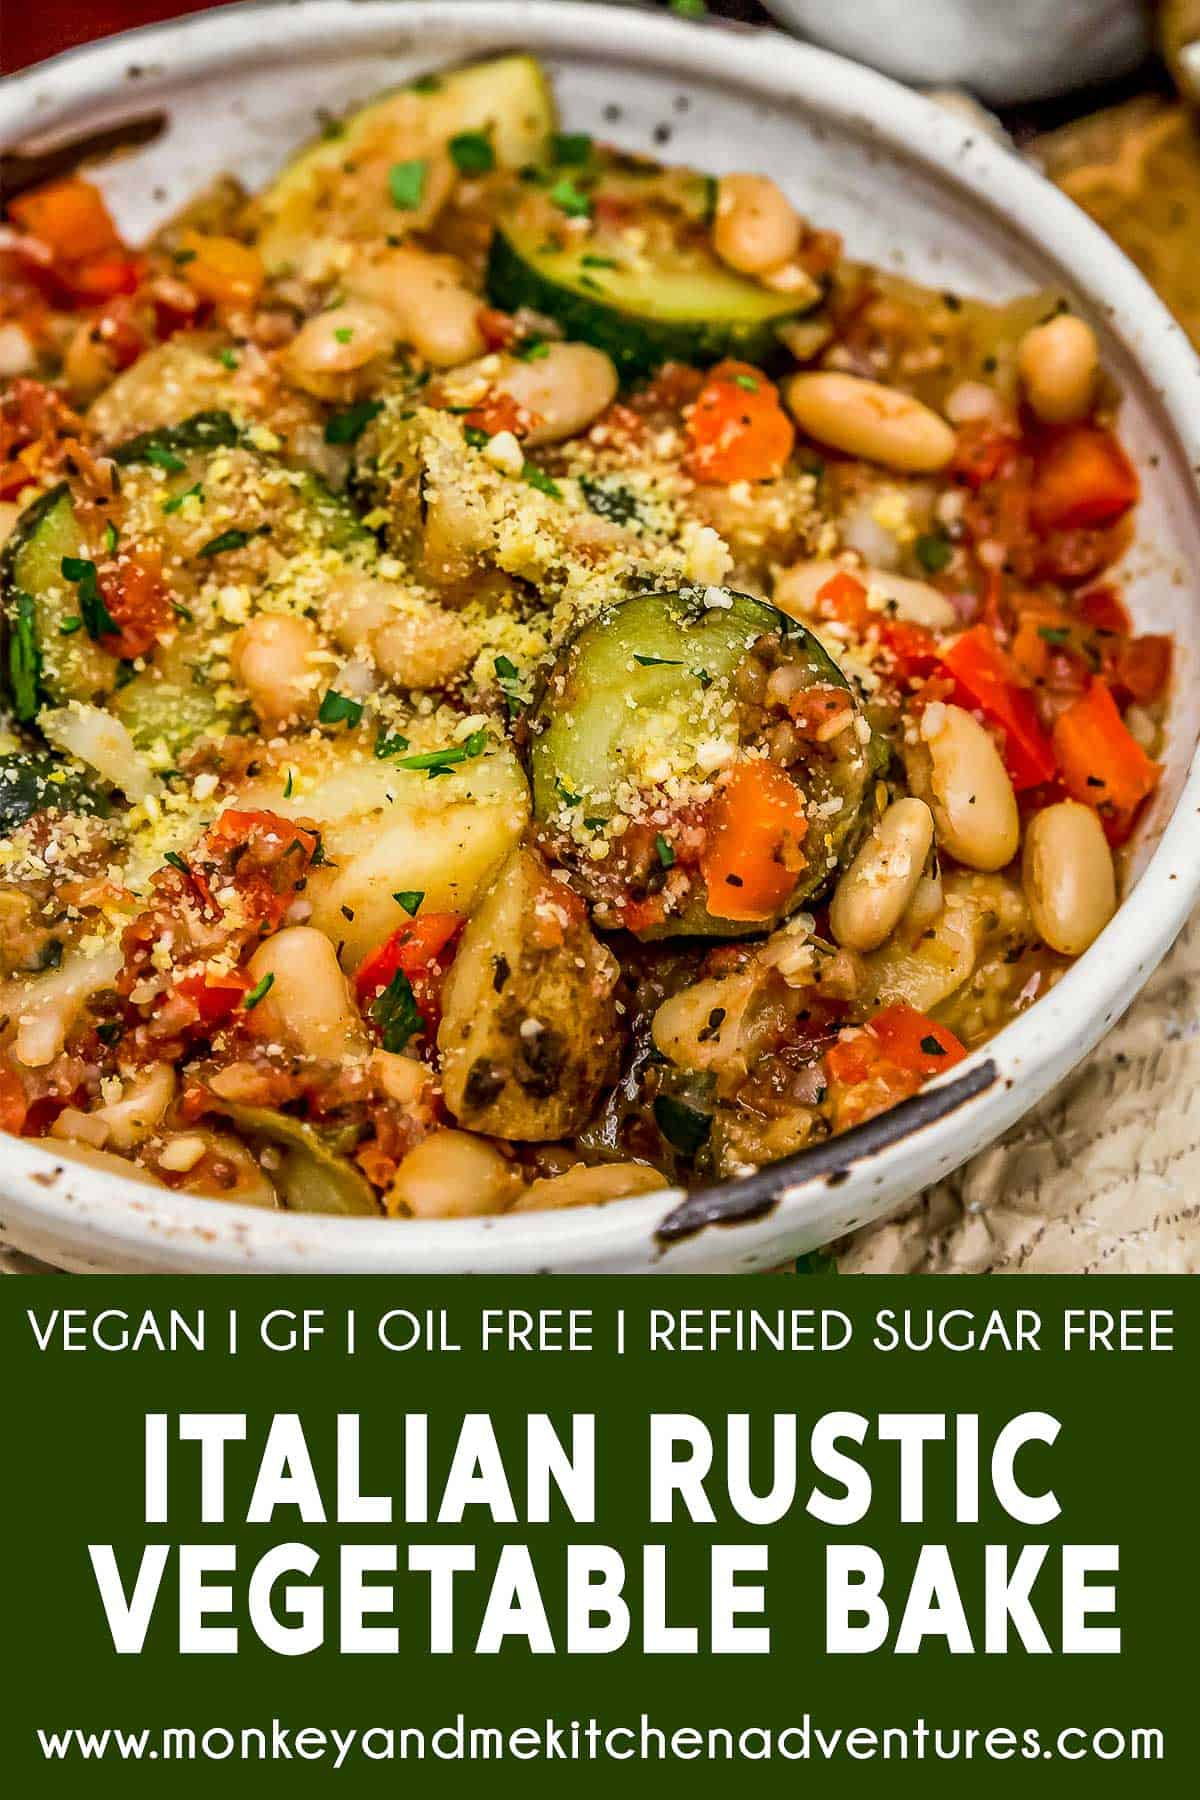 Rustic Italian Vegetable Bake with text description